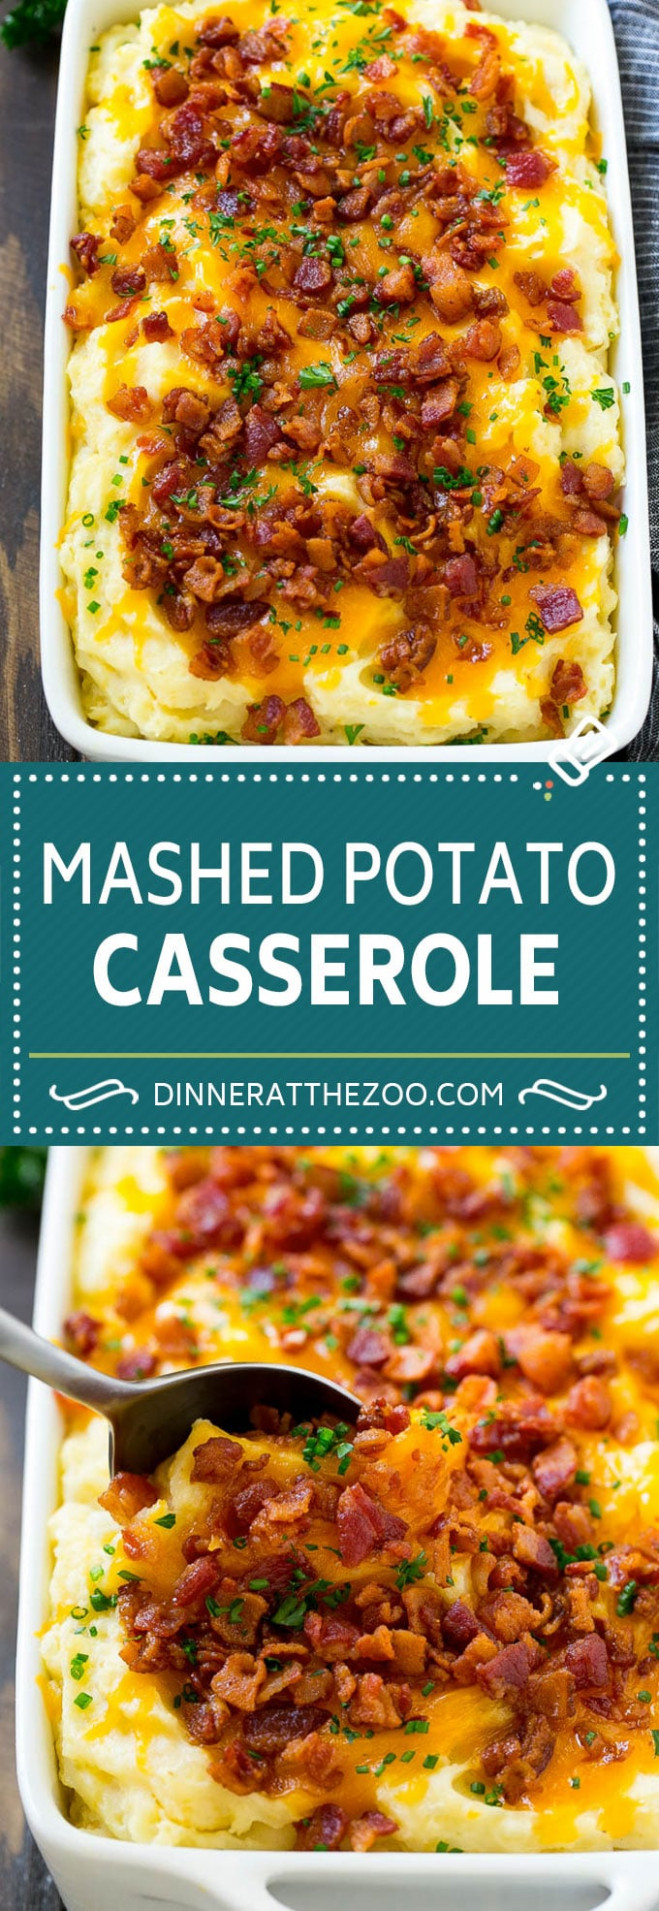 Loaded Mashed Potato Casserole - Dinner At The Zoo - Potato Recipes Dinner